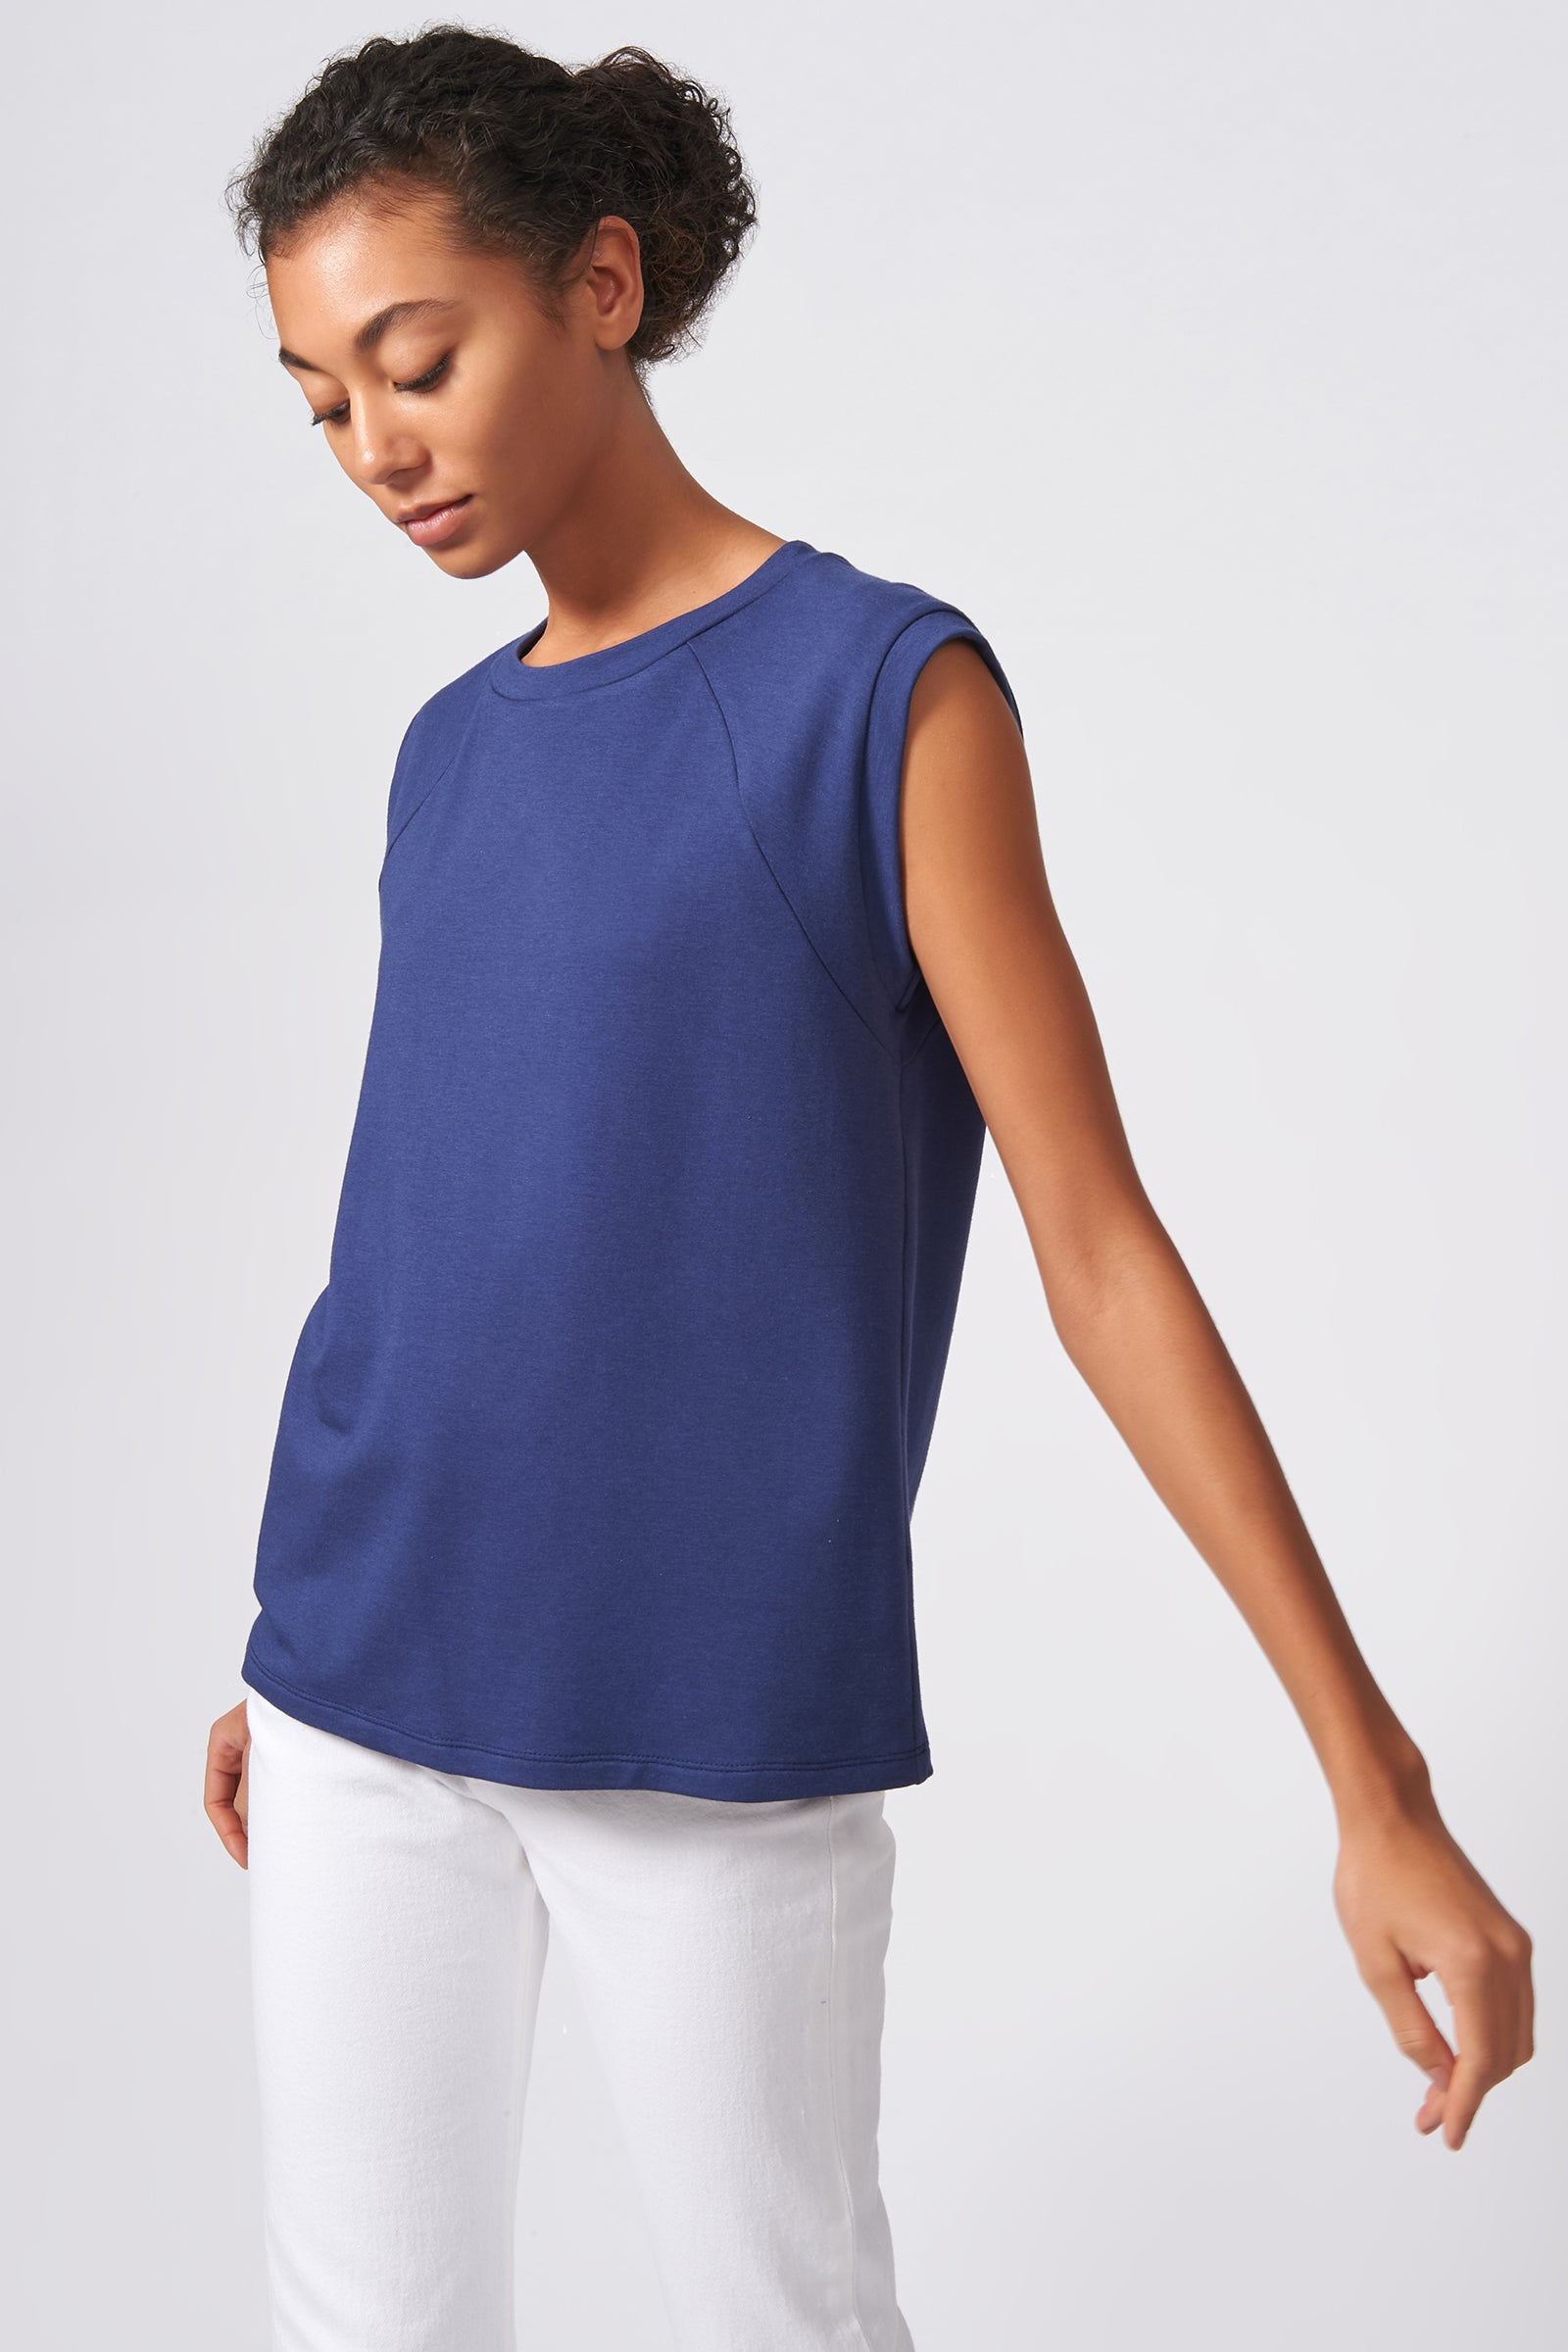 Kal Rieman Raglan Sweatshirt in Blue on Model Front View